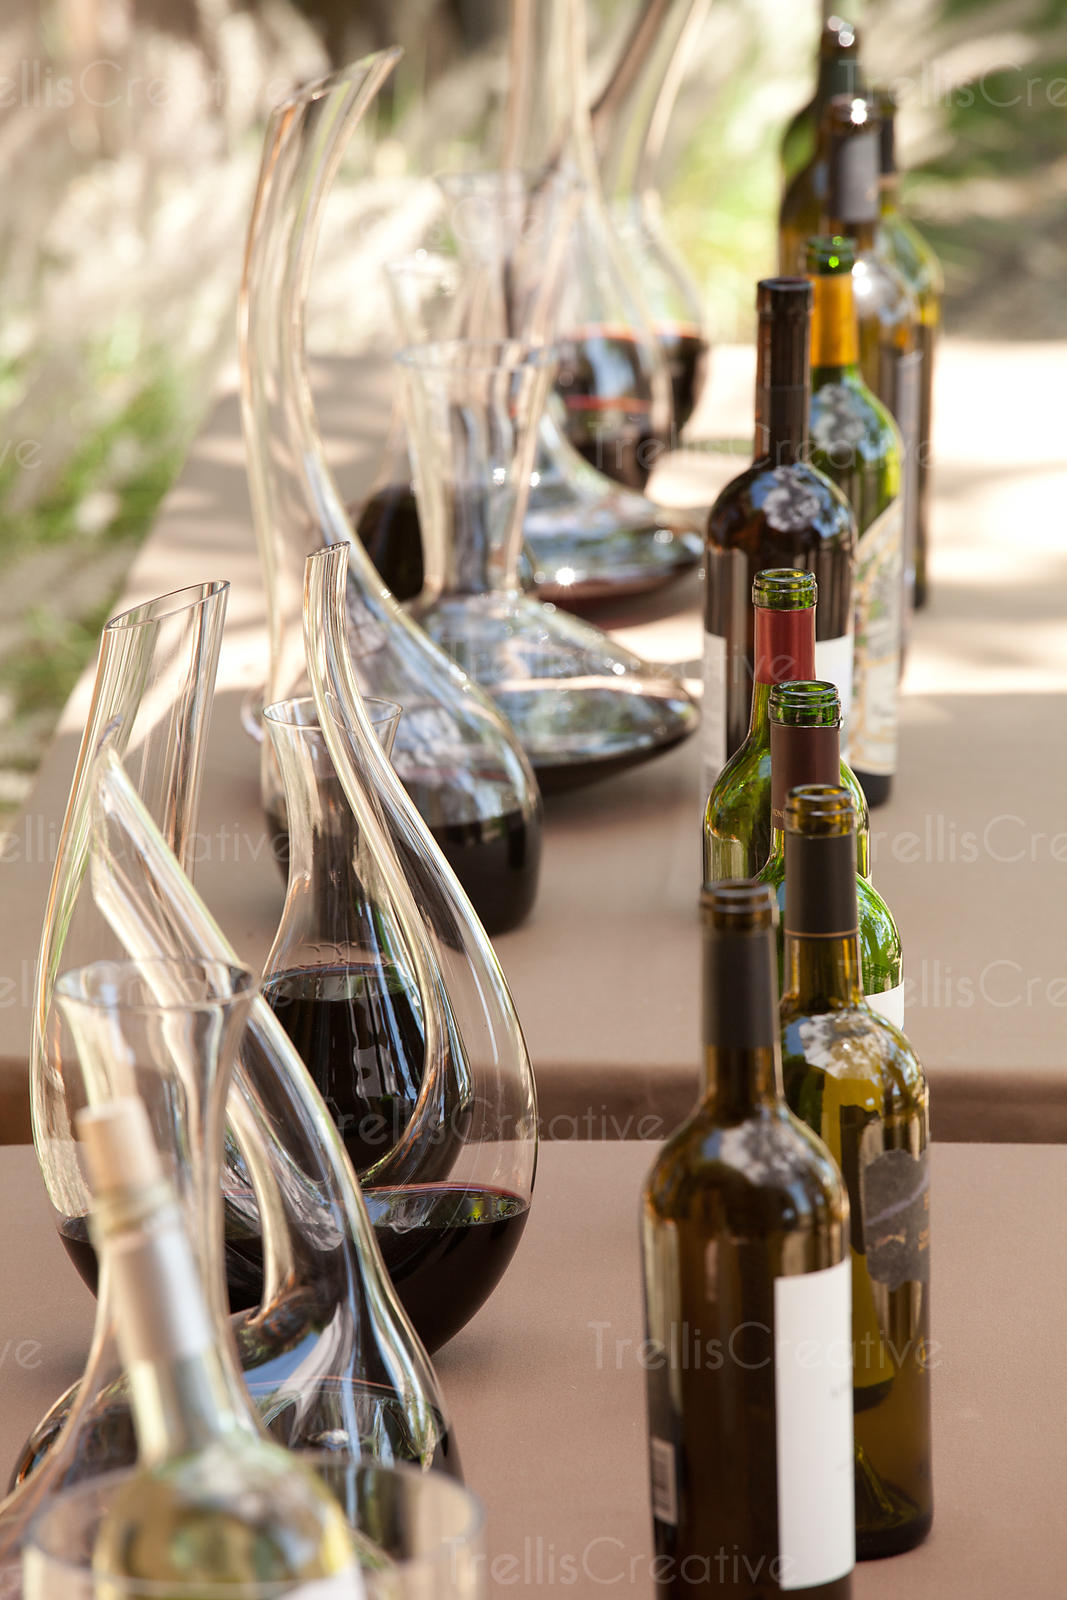 Decanters of red wine with bottles on table in winery